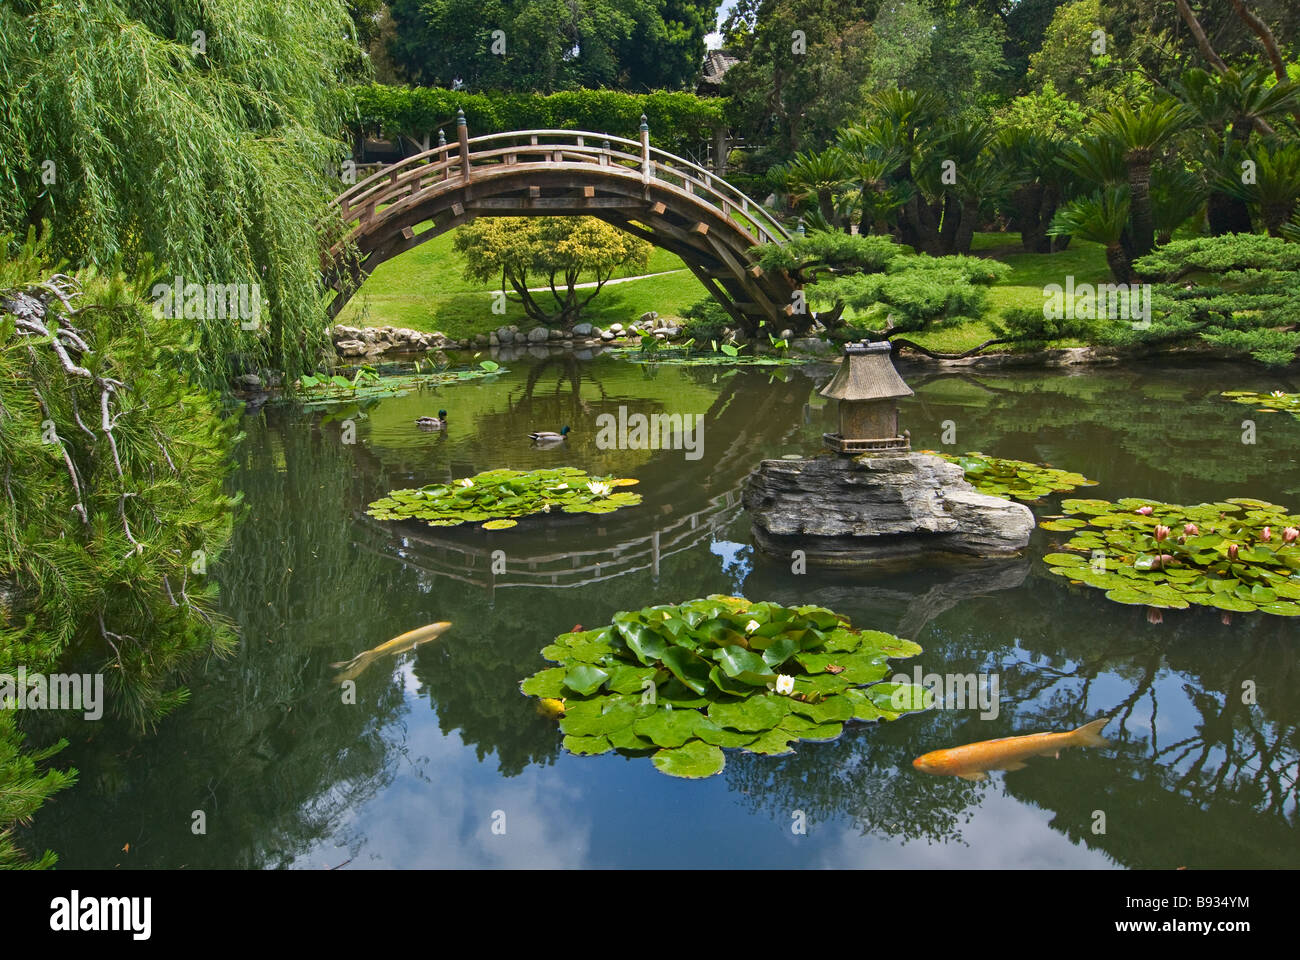 Japanese Garden with Moon Bridge and Lotus Pond with Koi Fish